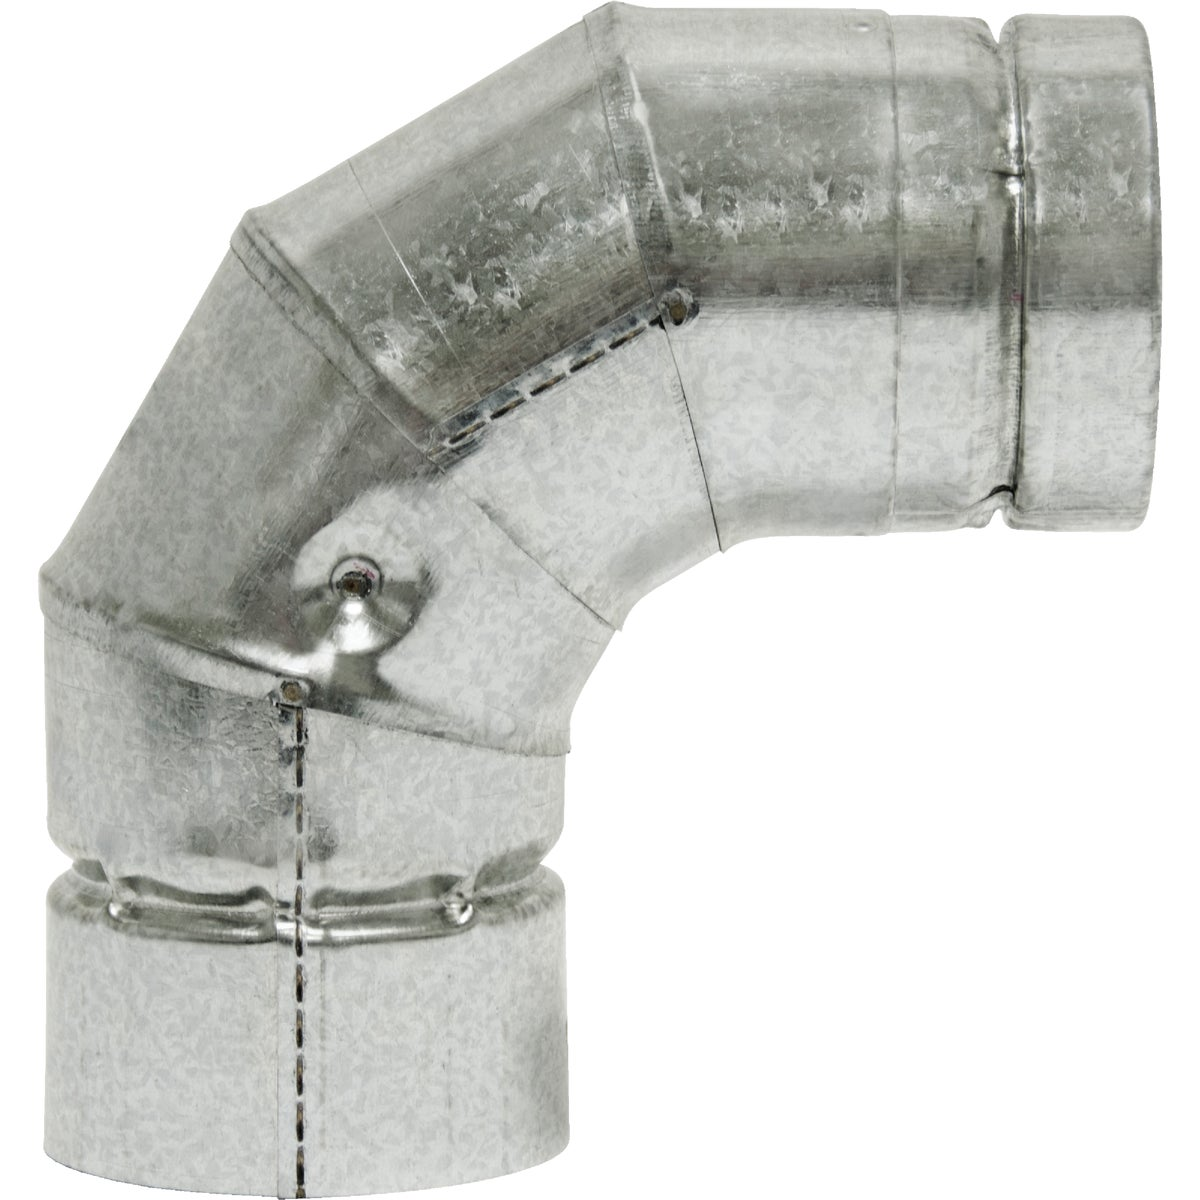 "3"" 90D PLT STOVE ELBOW - 3VP-90EL by Selkirk Corporation"